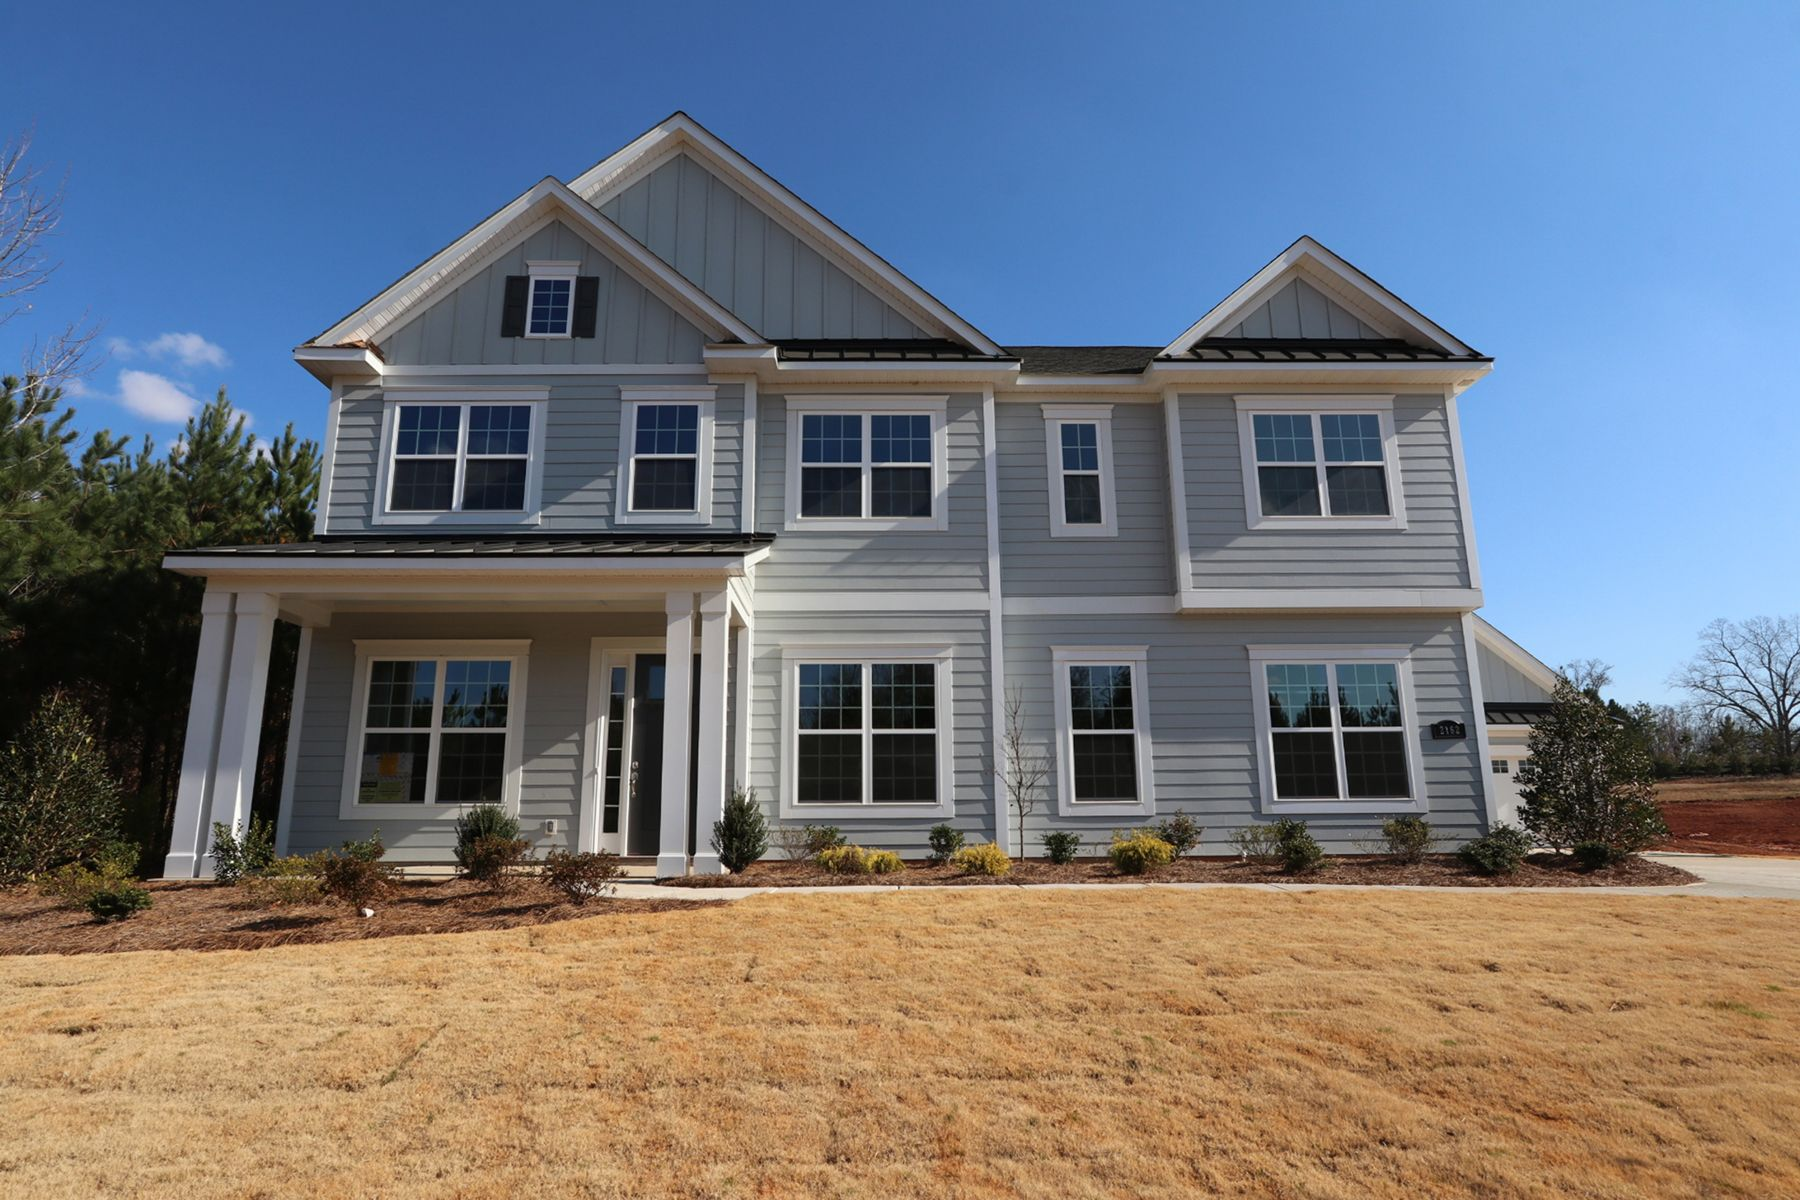 Single Family for Active at Brooksby Ii 2162 Loire Valley Drive Indian Land, South Carolina 29707 United States